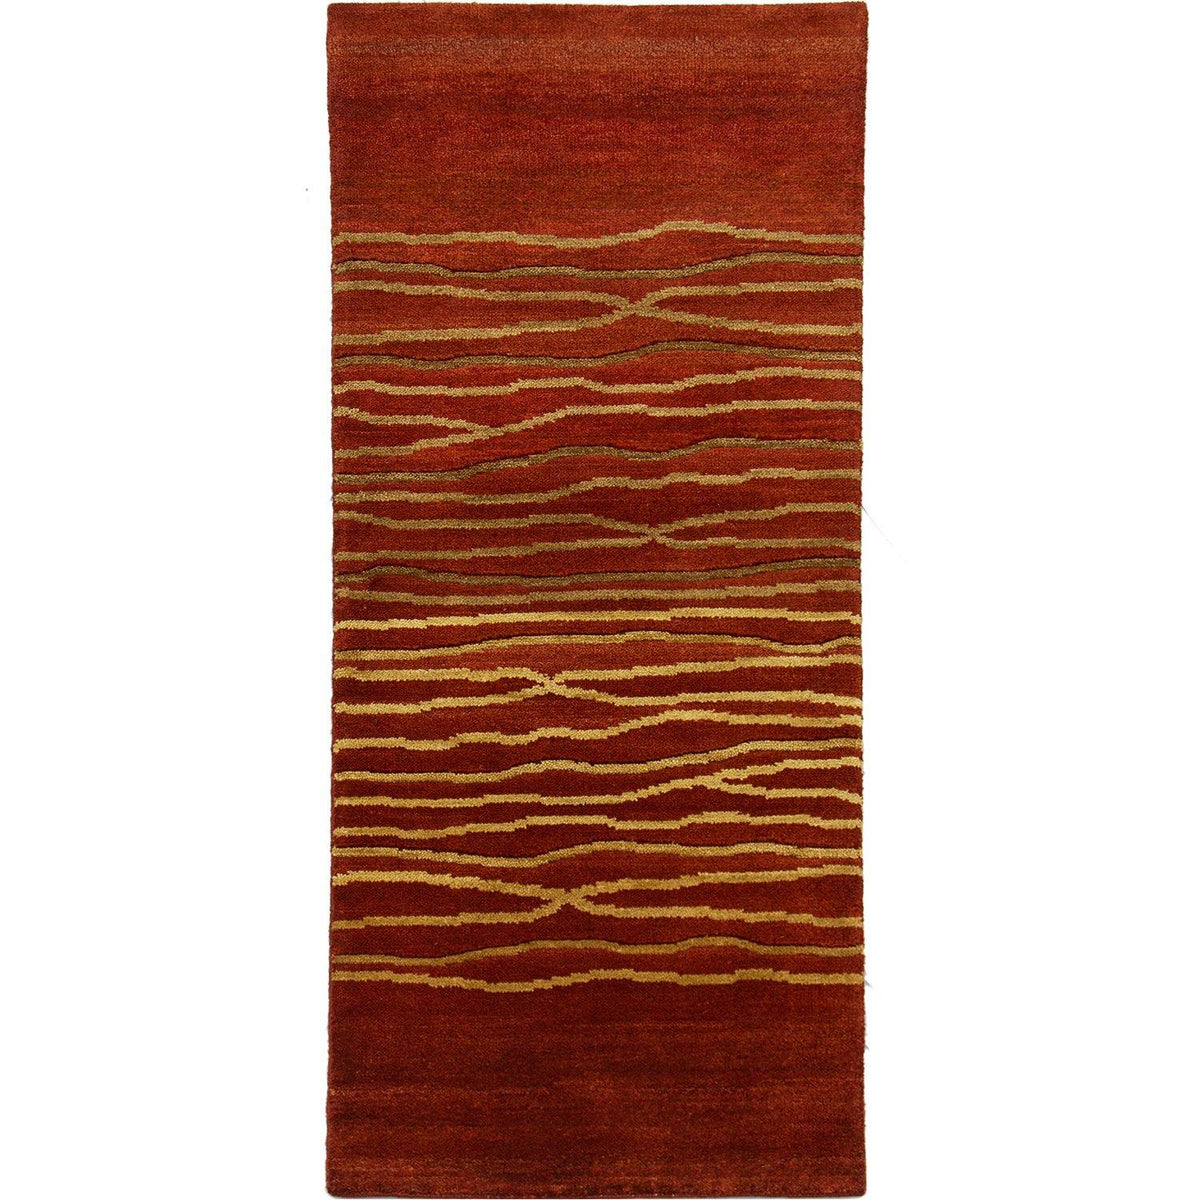 Contemporary Hand-knotted NZ Wool Runner 78cm x 301cm